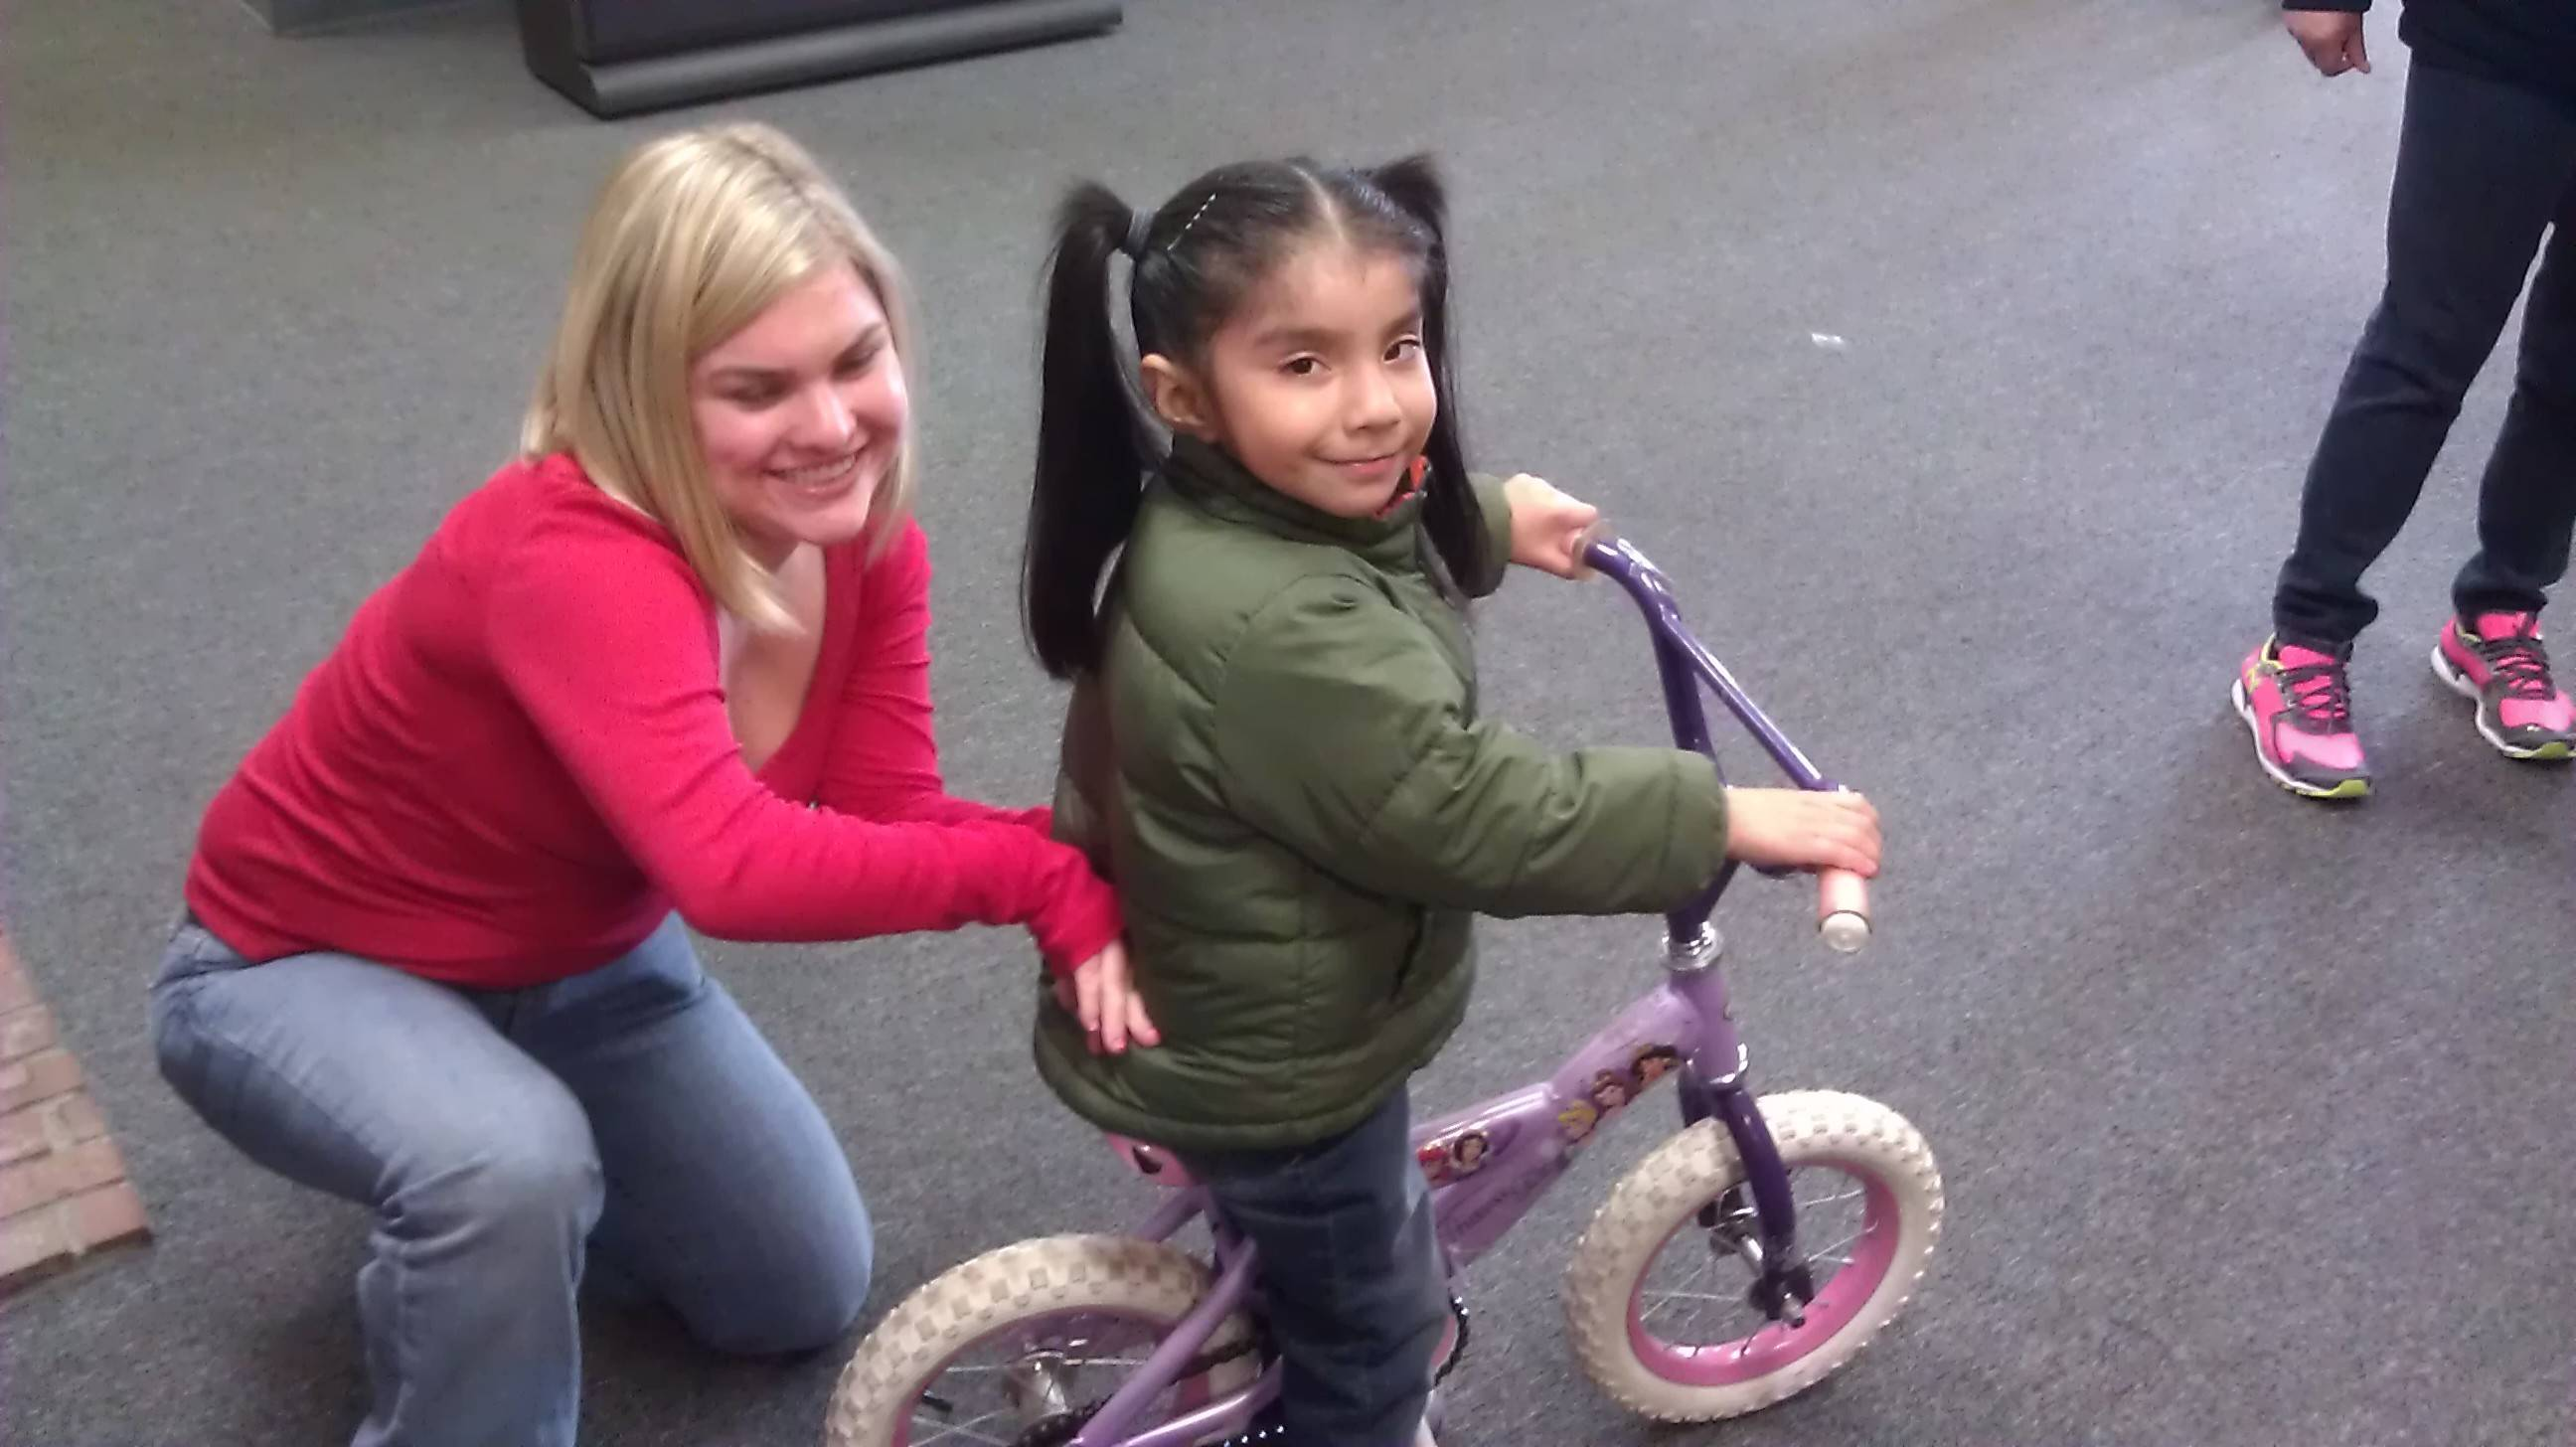 Lisa Johnson of the YMCA helps fit Laura Hernandez with her first bike last fall at the Palatine Opportunity Center. Laura didn't win a bike at the Day of Giving, but Wayne Mikes brought bikes in spring for those children who did not get one in November.